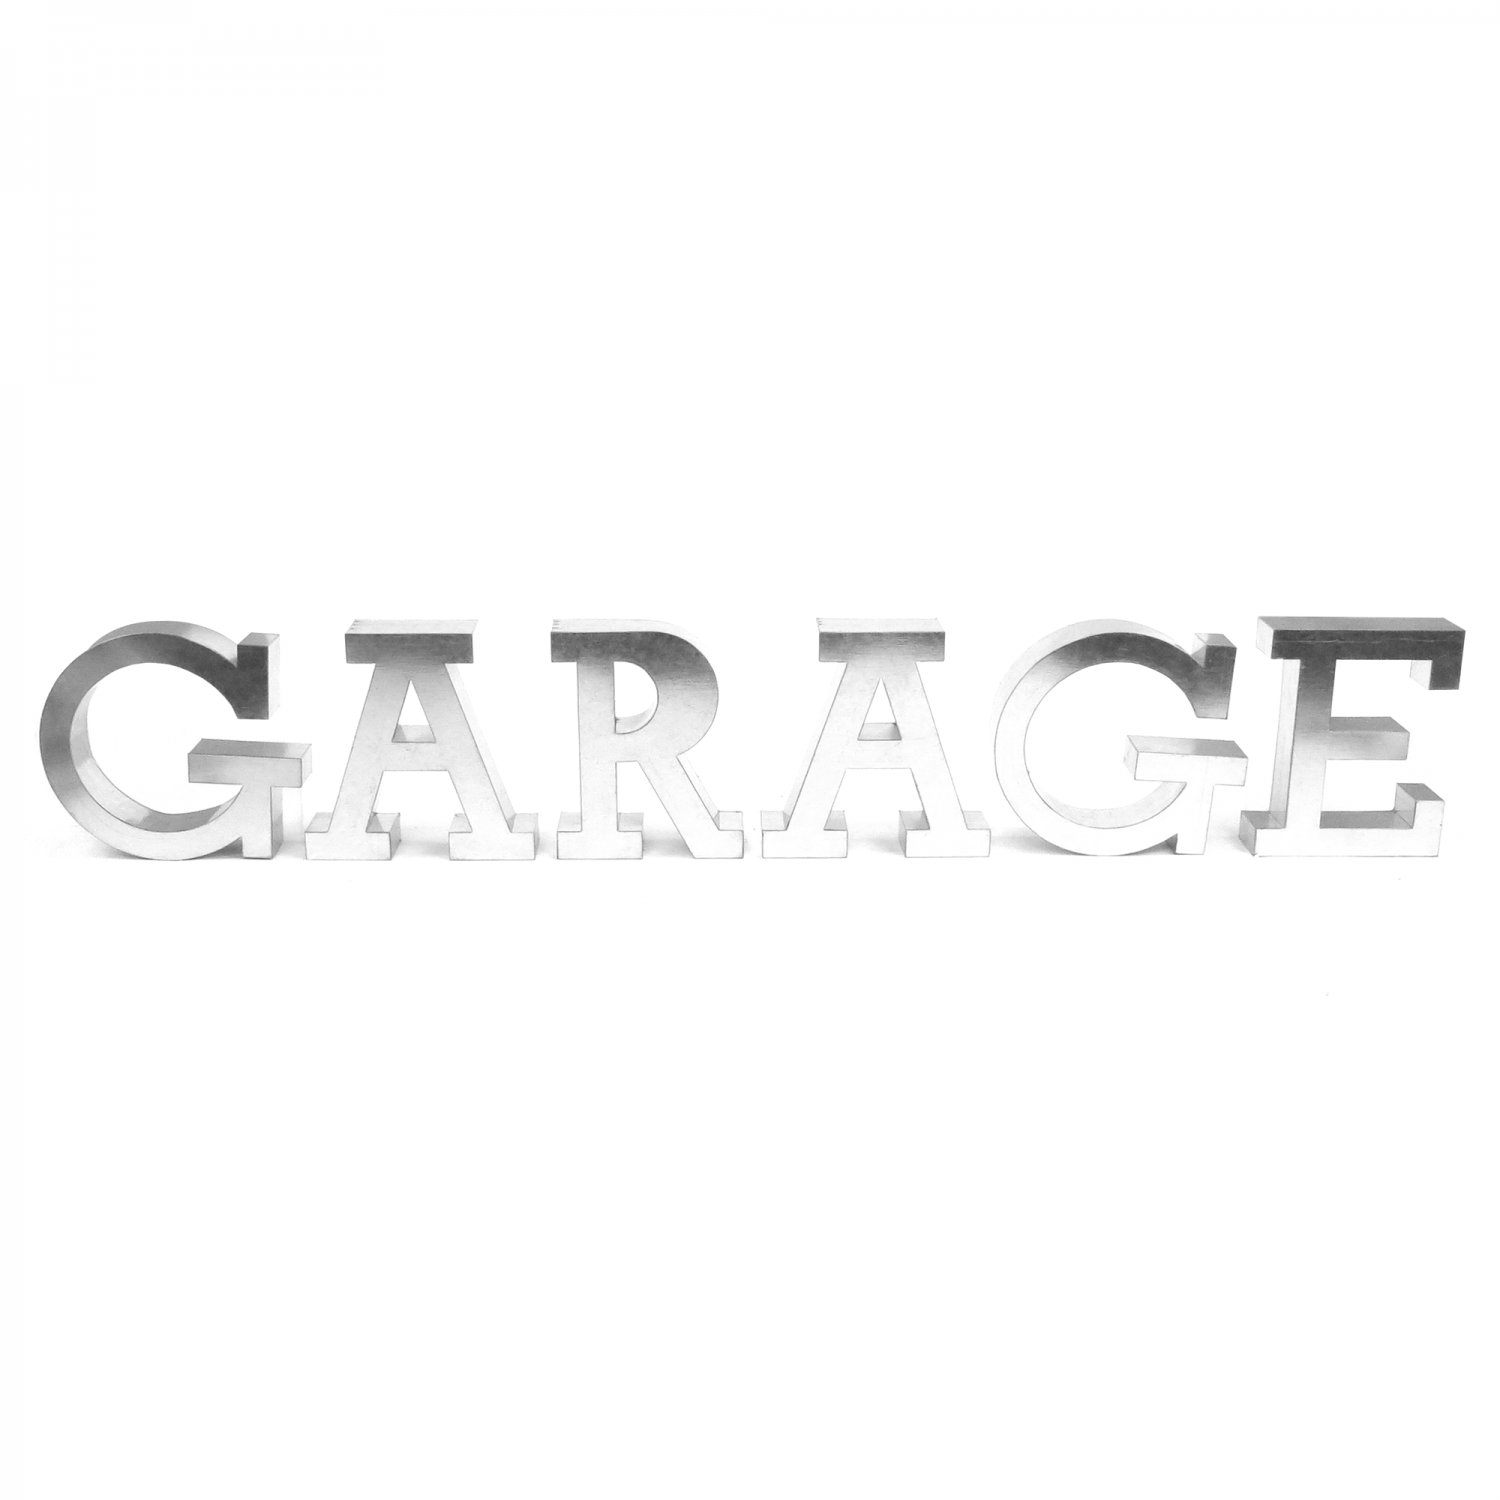 Garage Banners / Signs / Tools / Accessories